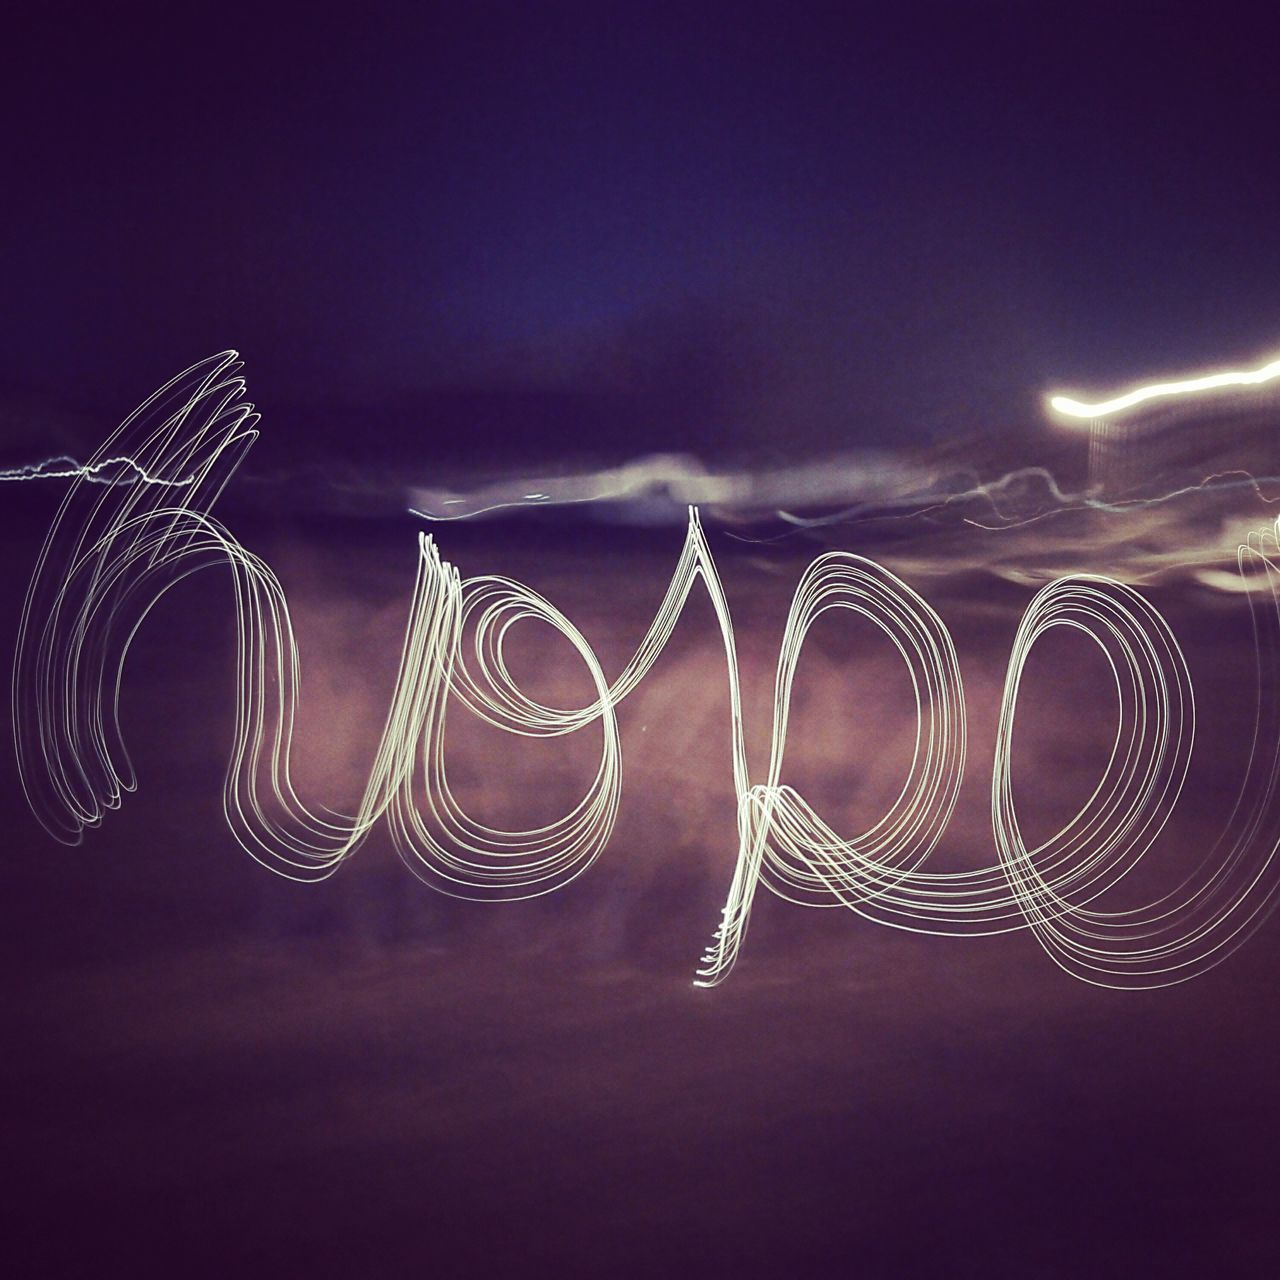 Hope light painting Artistic Expression Light-Play Lightpainting Hope Words In Picture Words In Lights Hopes And Dreams Getting Inspired Creative Shots Playing With Effects Showcase: February Learn And Shoot: After Dark